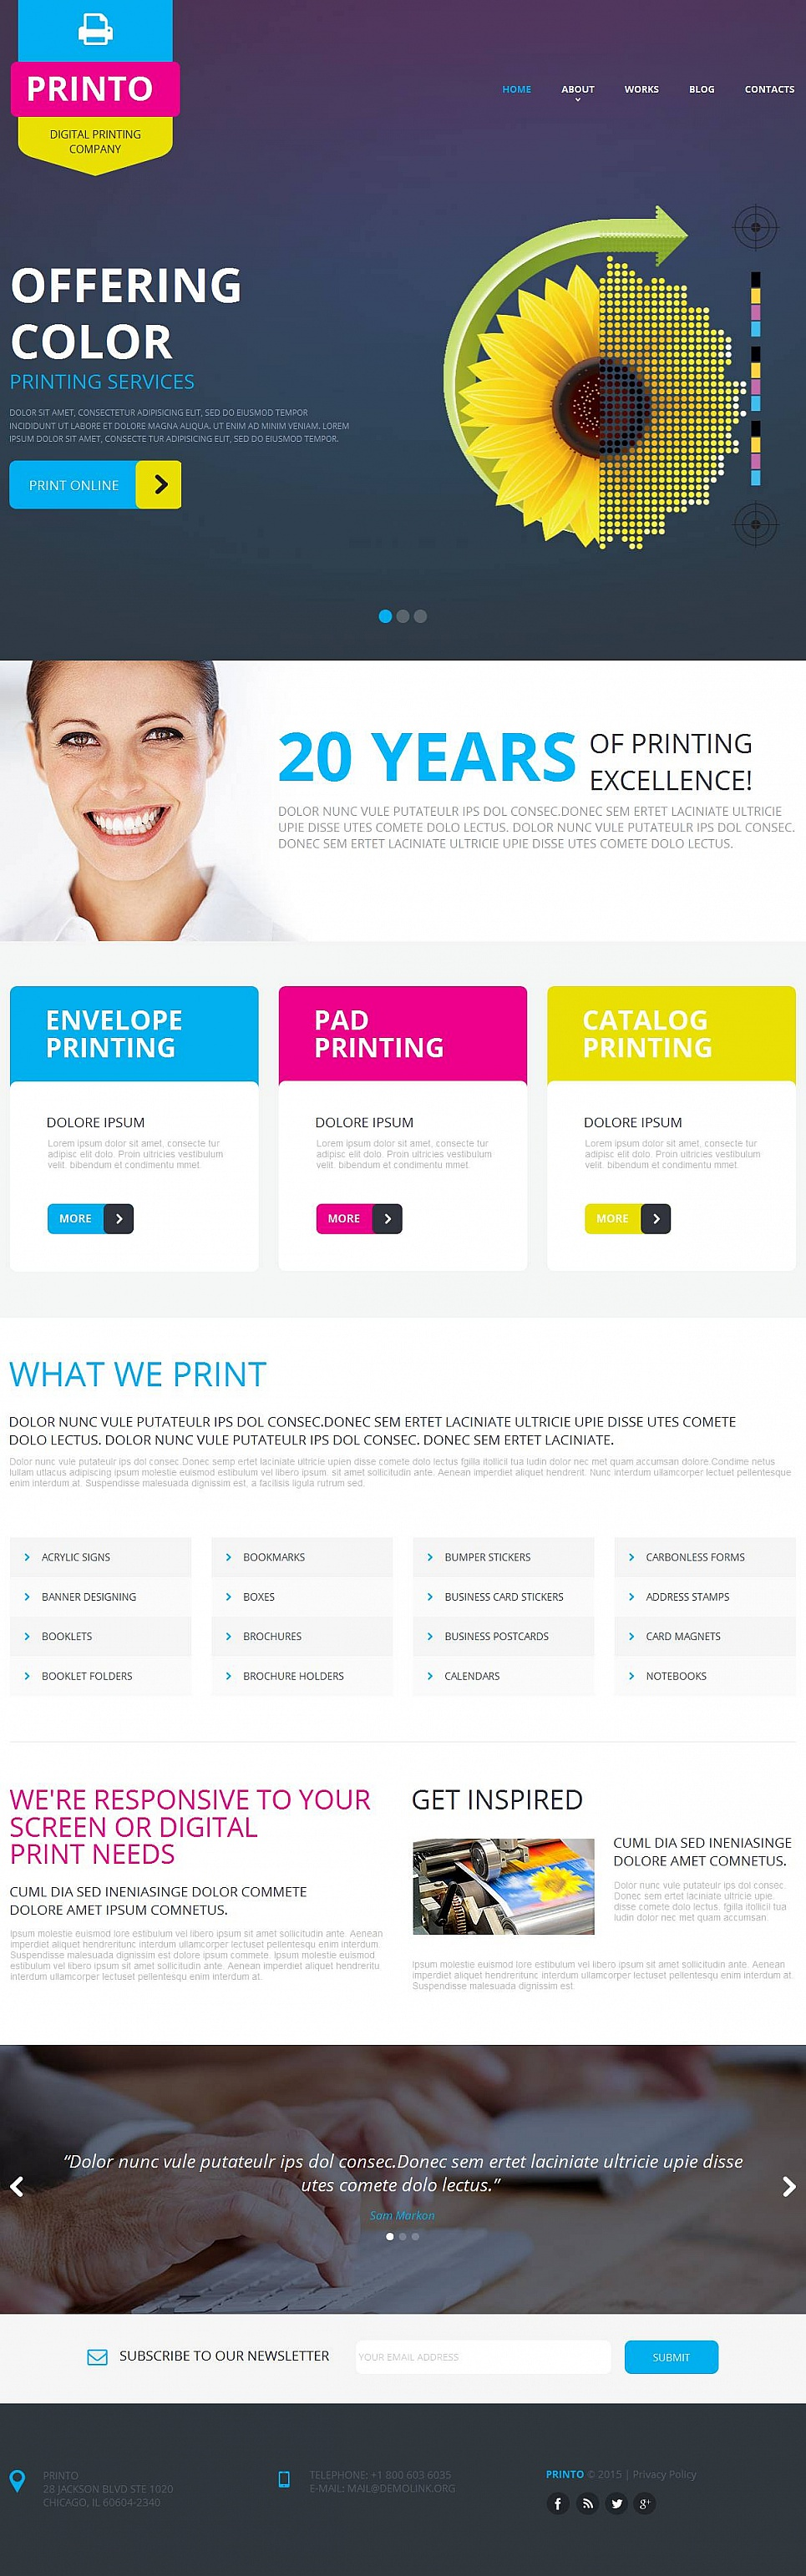 Printing Company Design with a Header Slider - image